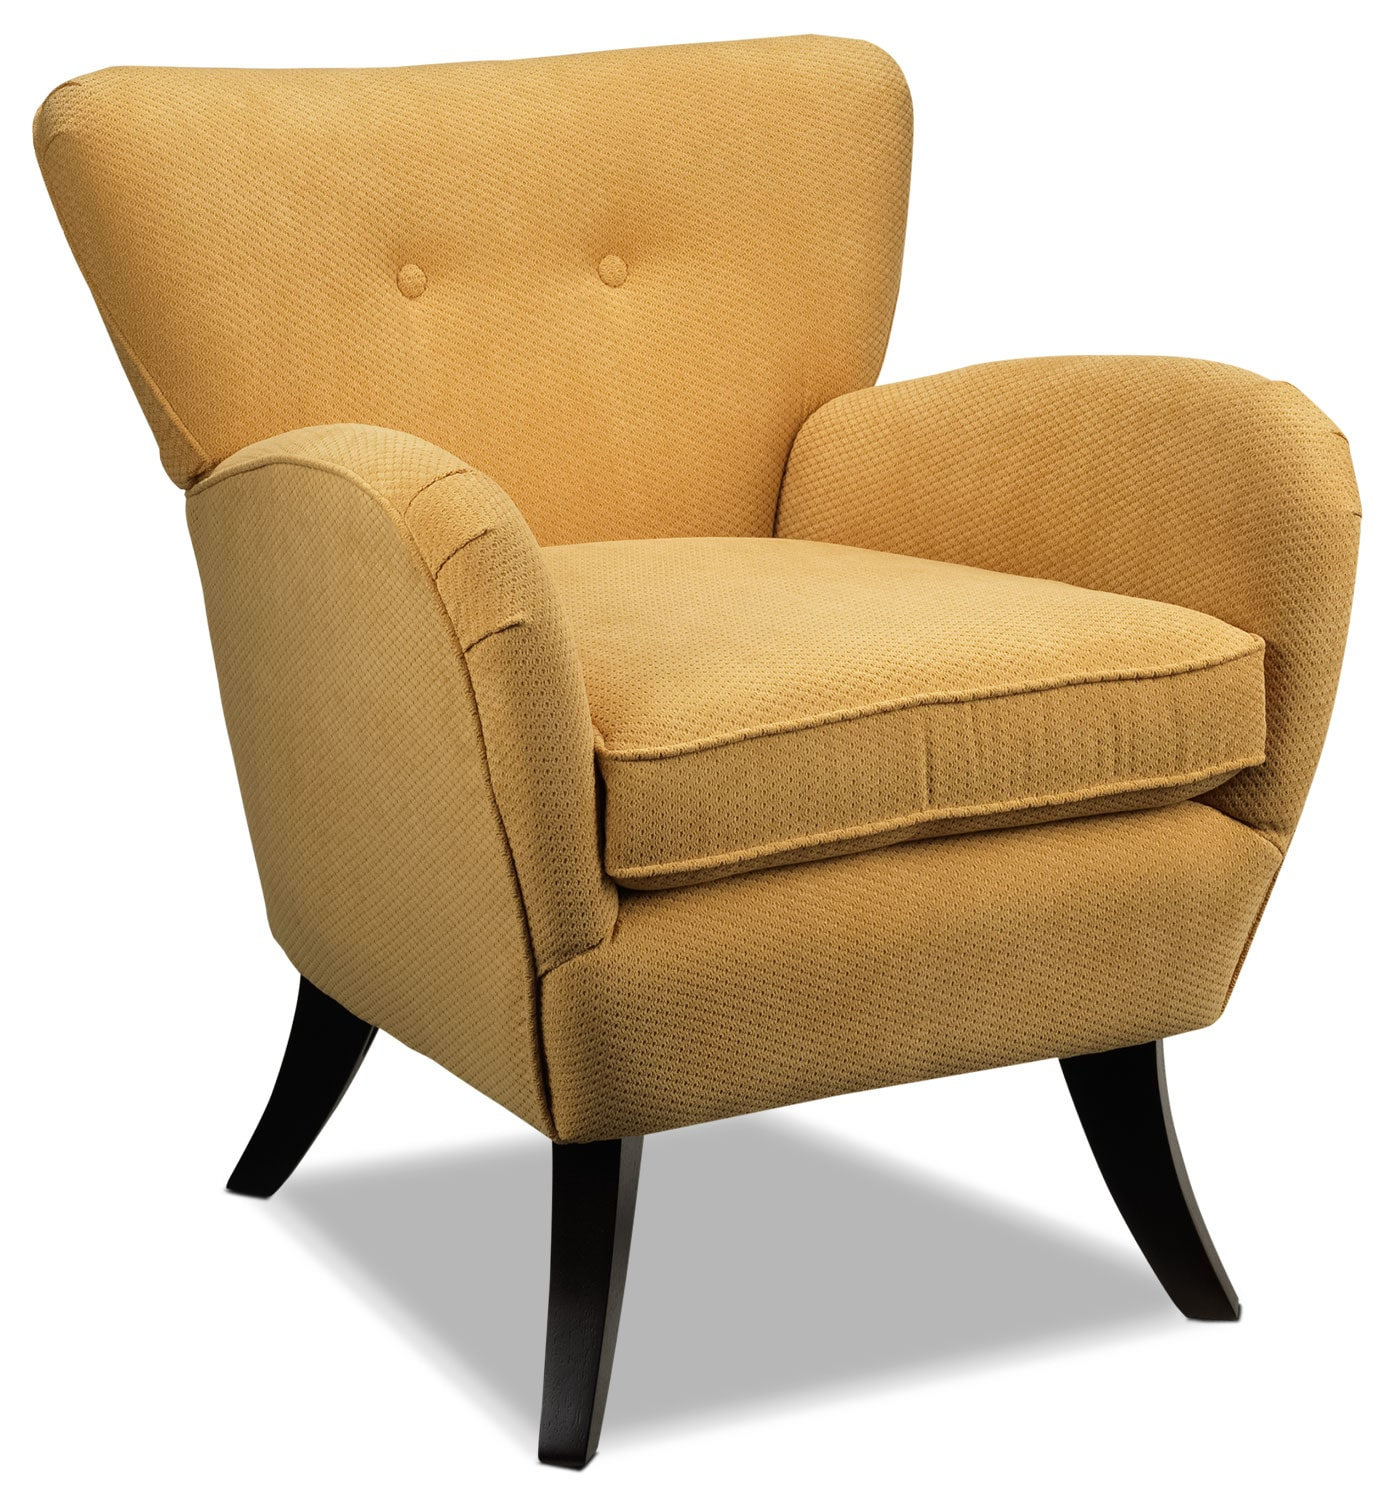 Living Room Furniture - Elnora Accent Chair - Lemon Yellow